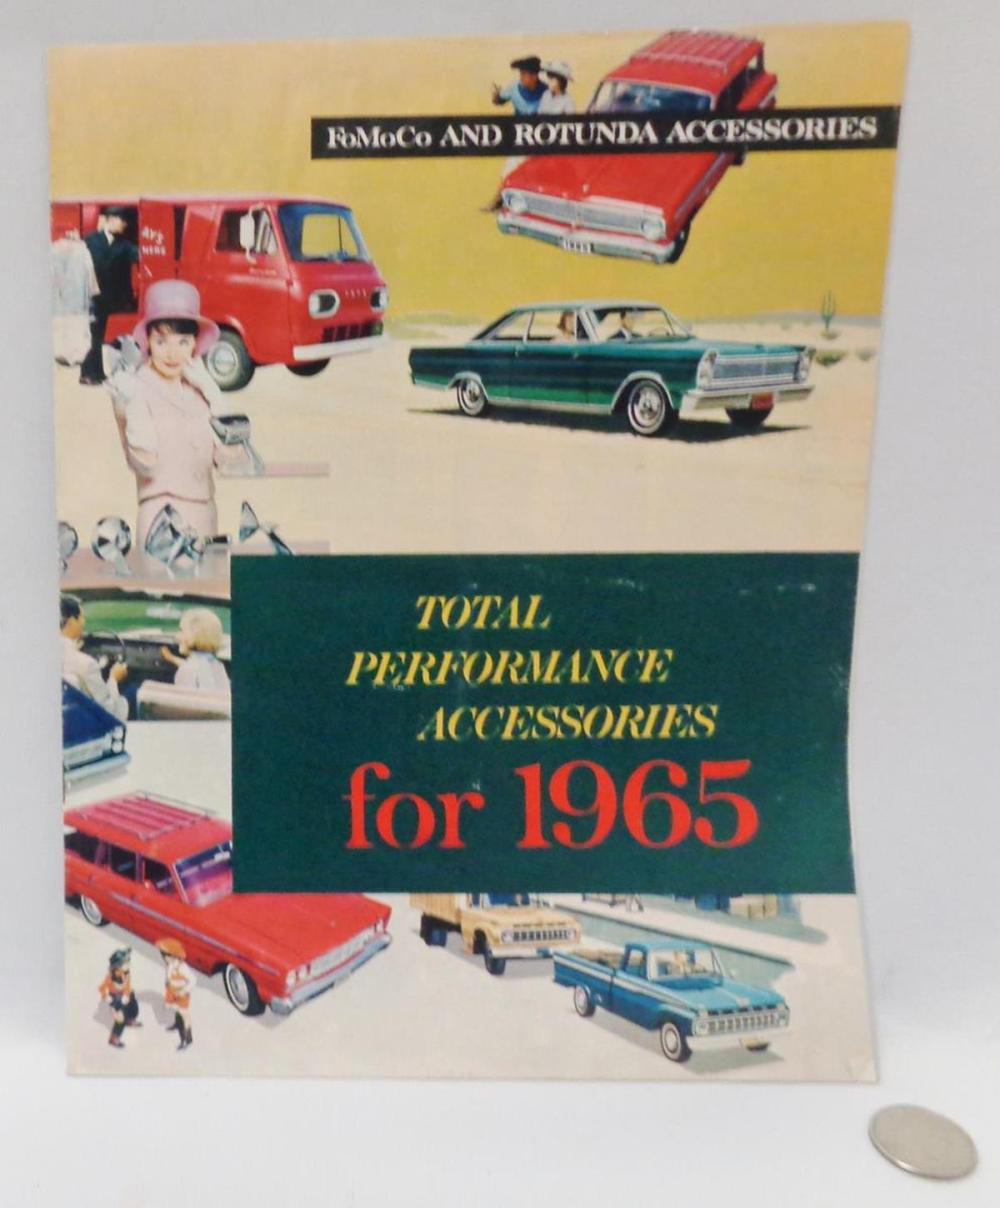 Vintage 1965 Ford FoMoCo And Rotunda Accessories Catalog